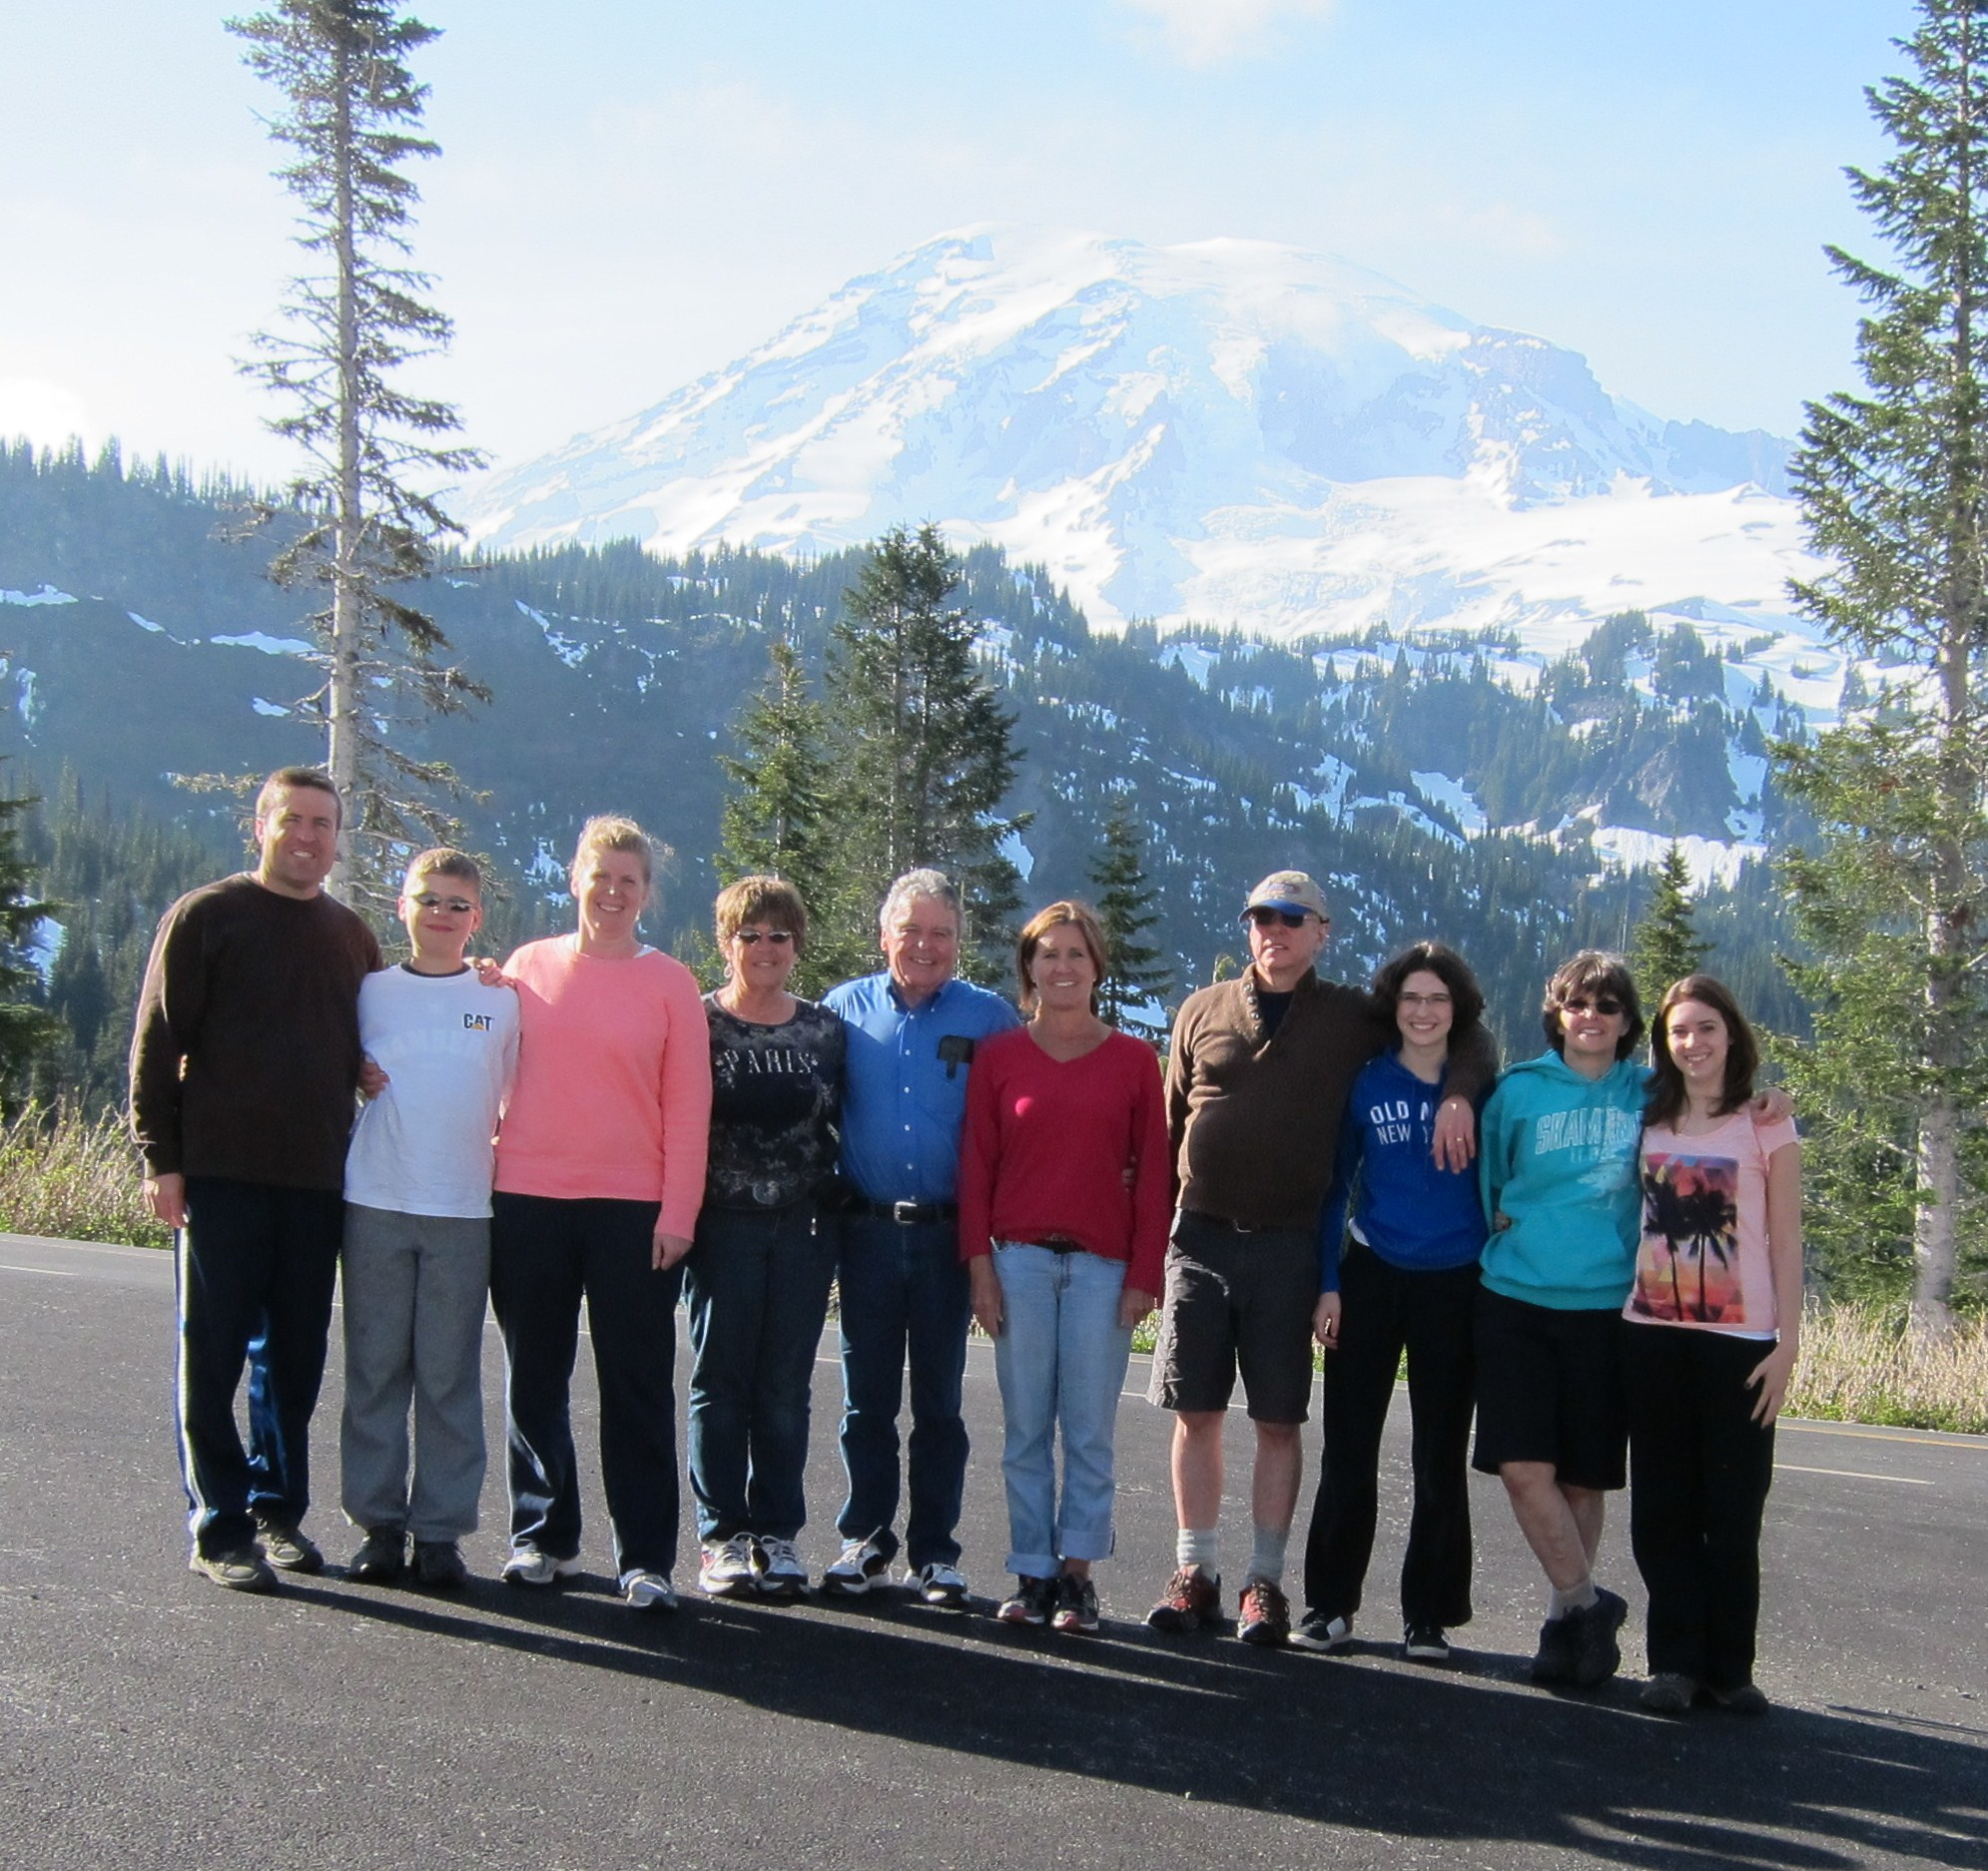 Our family at Mt. Rainier National Park